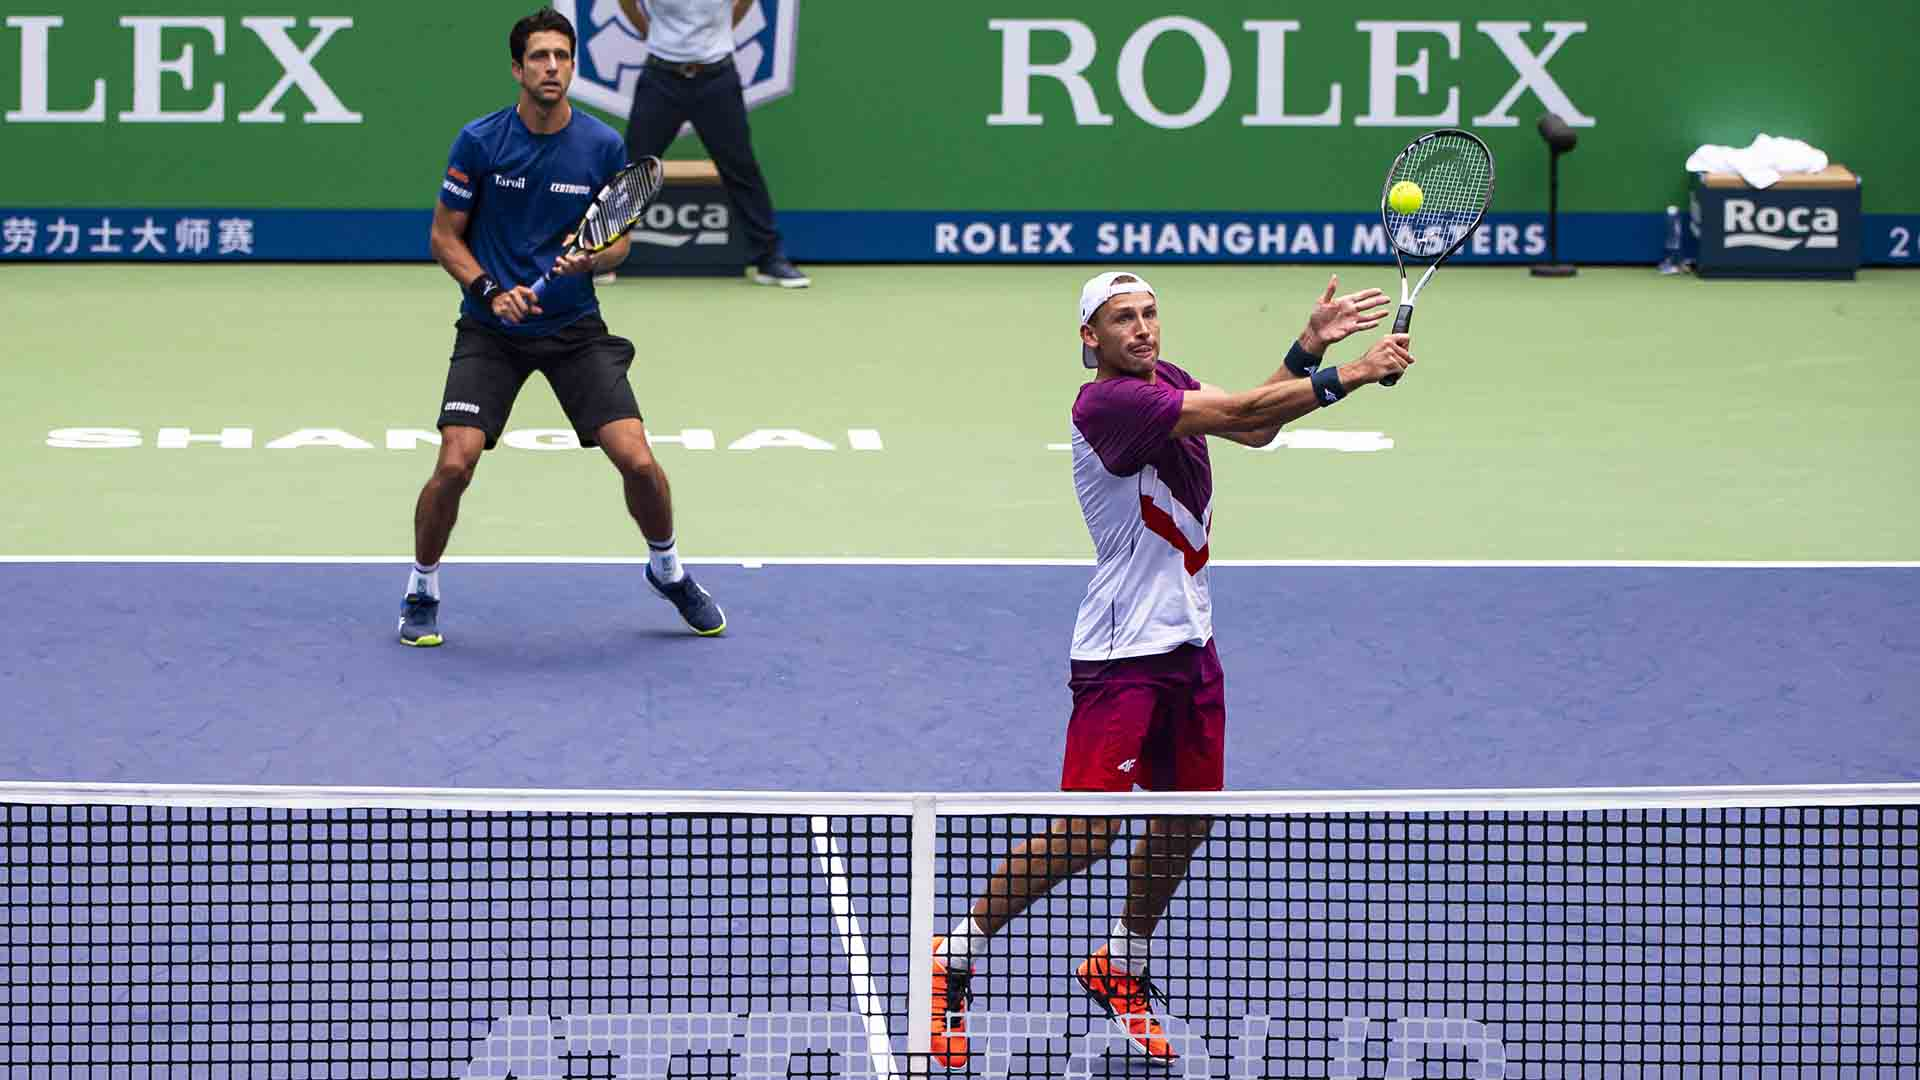 Marcelo Melo and Lukasz Kubot defeat Nicolas Mahut and Edouard Roger-Vasselin to reach their third straight Rolex Shanghai Masters final.